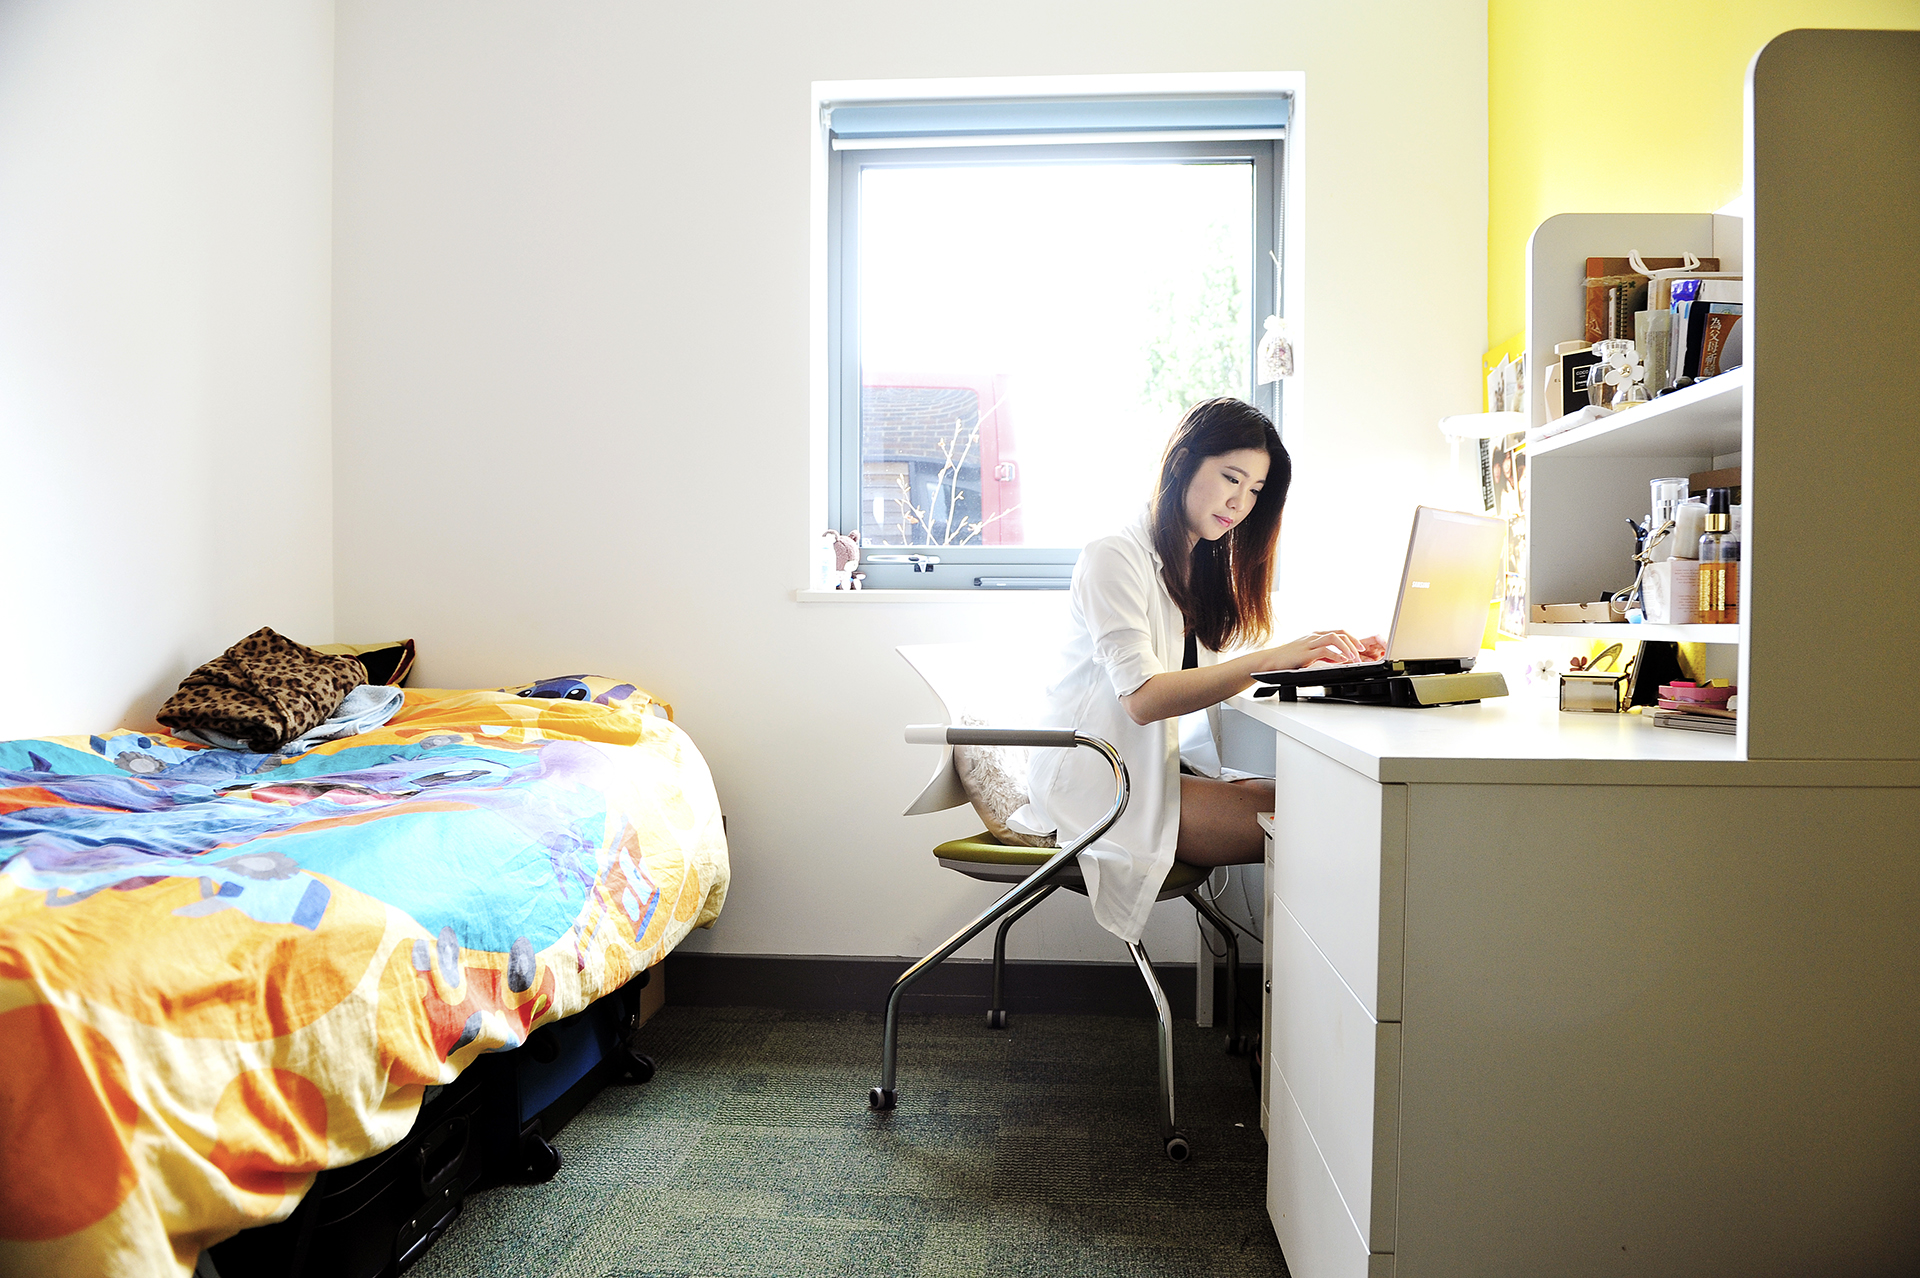 Student studying in a Single room at INTO University of Exeter student residences